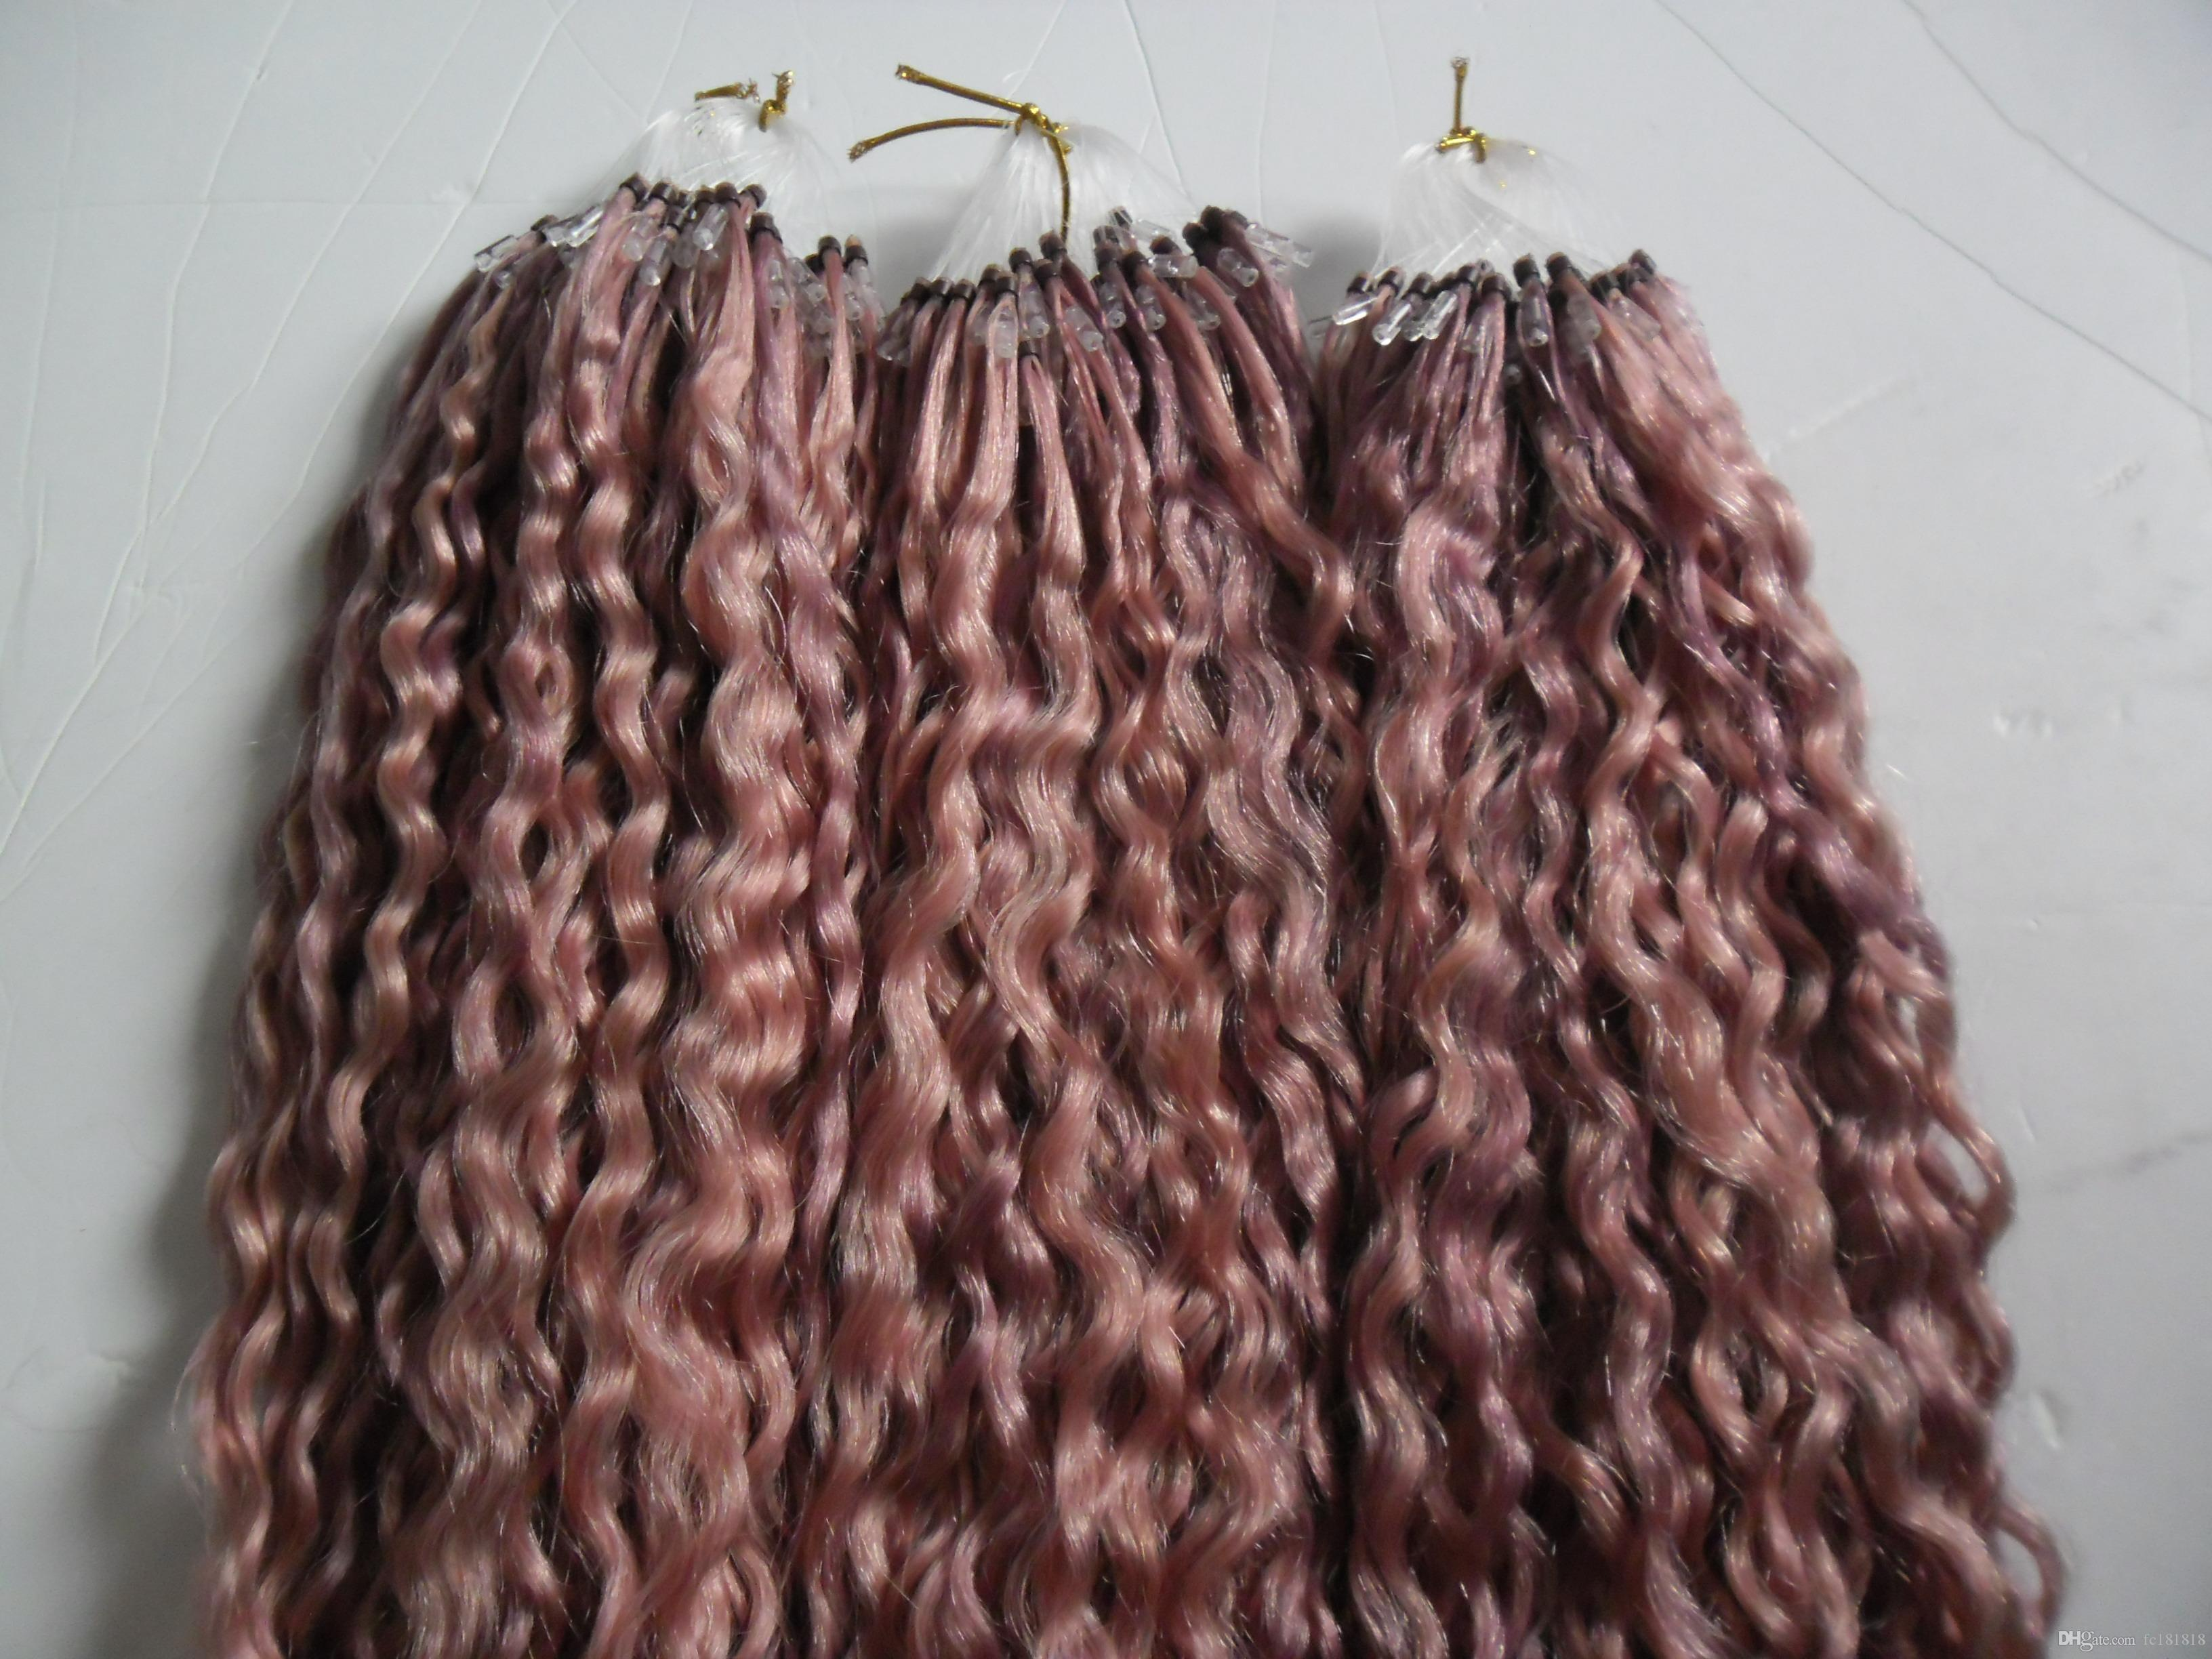 Brazilian Micro Loop Ring Hair Extension Remy Colored Hair Locks 10